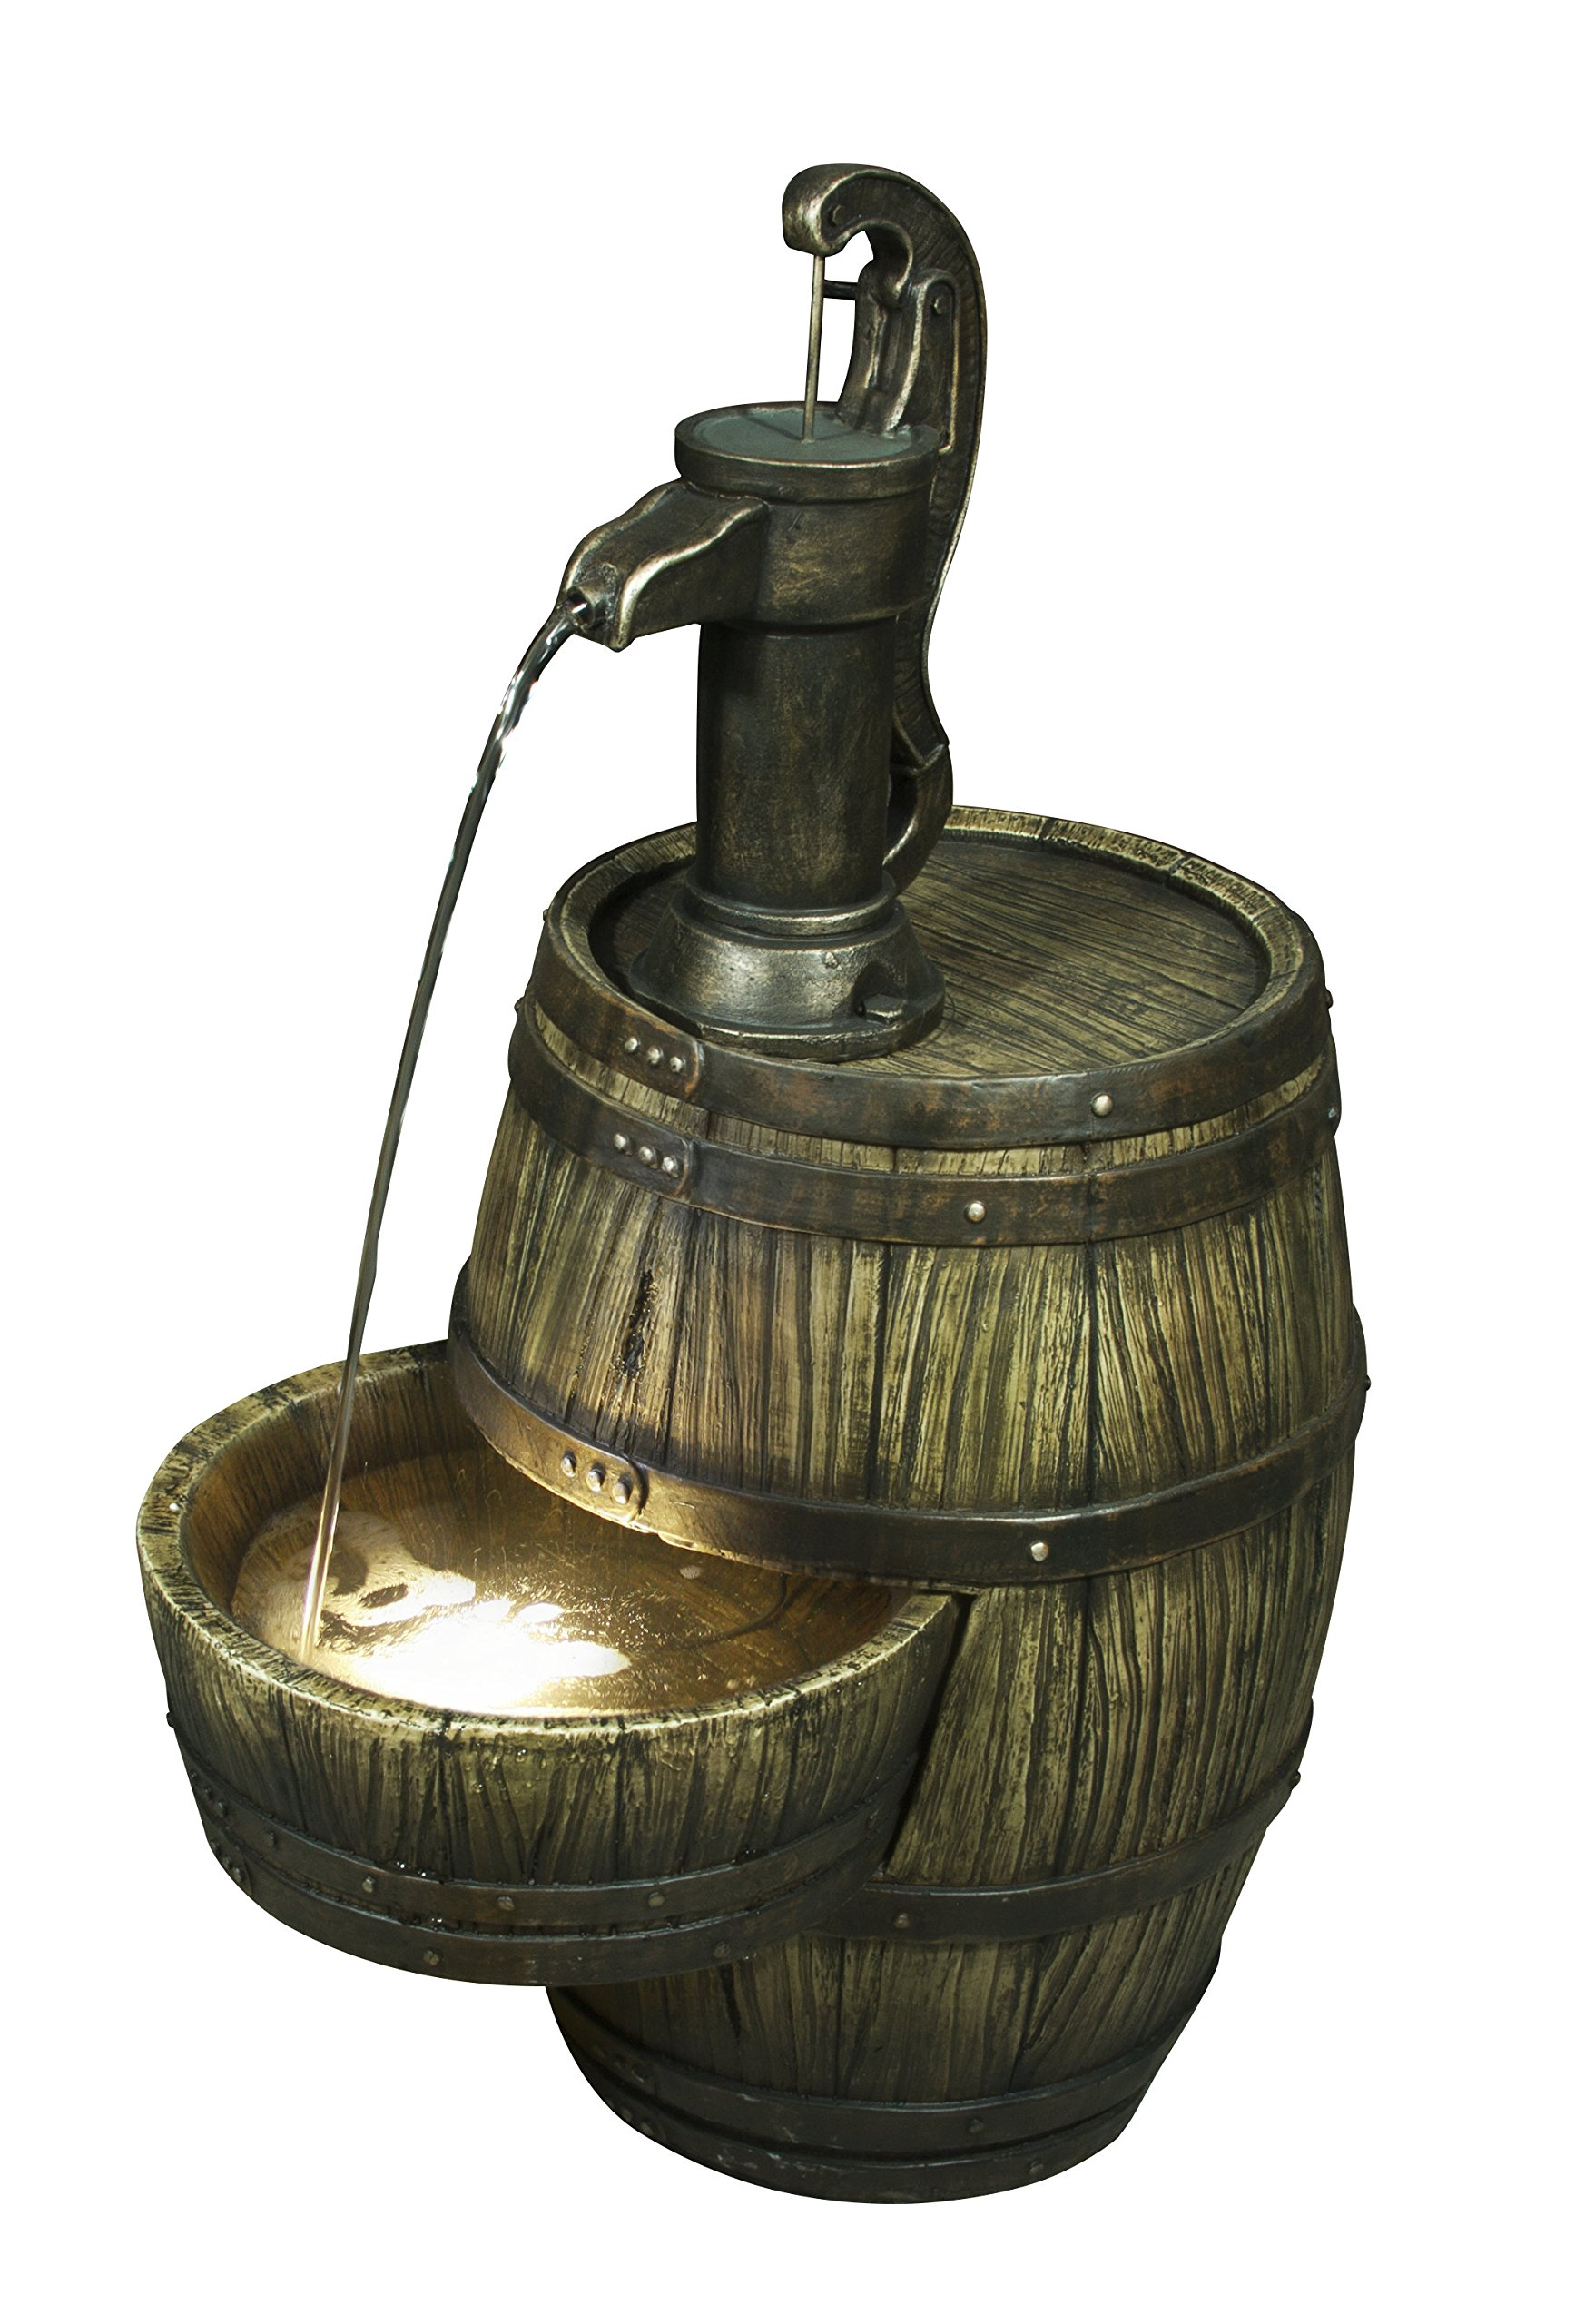 Hi-Line Gift Ltd Barrel with Hand Pump Fountain with LED Light